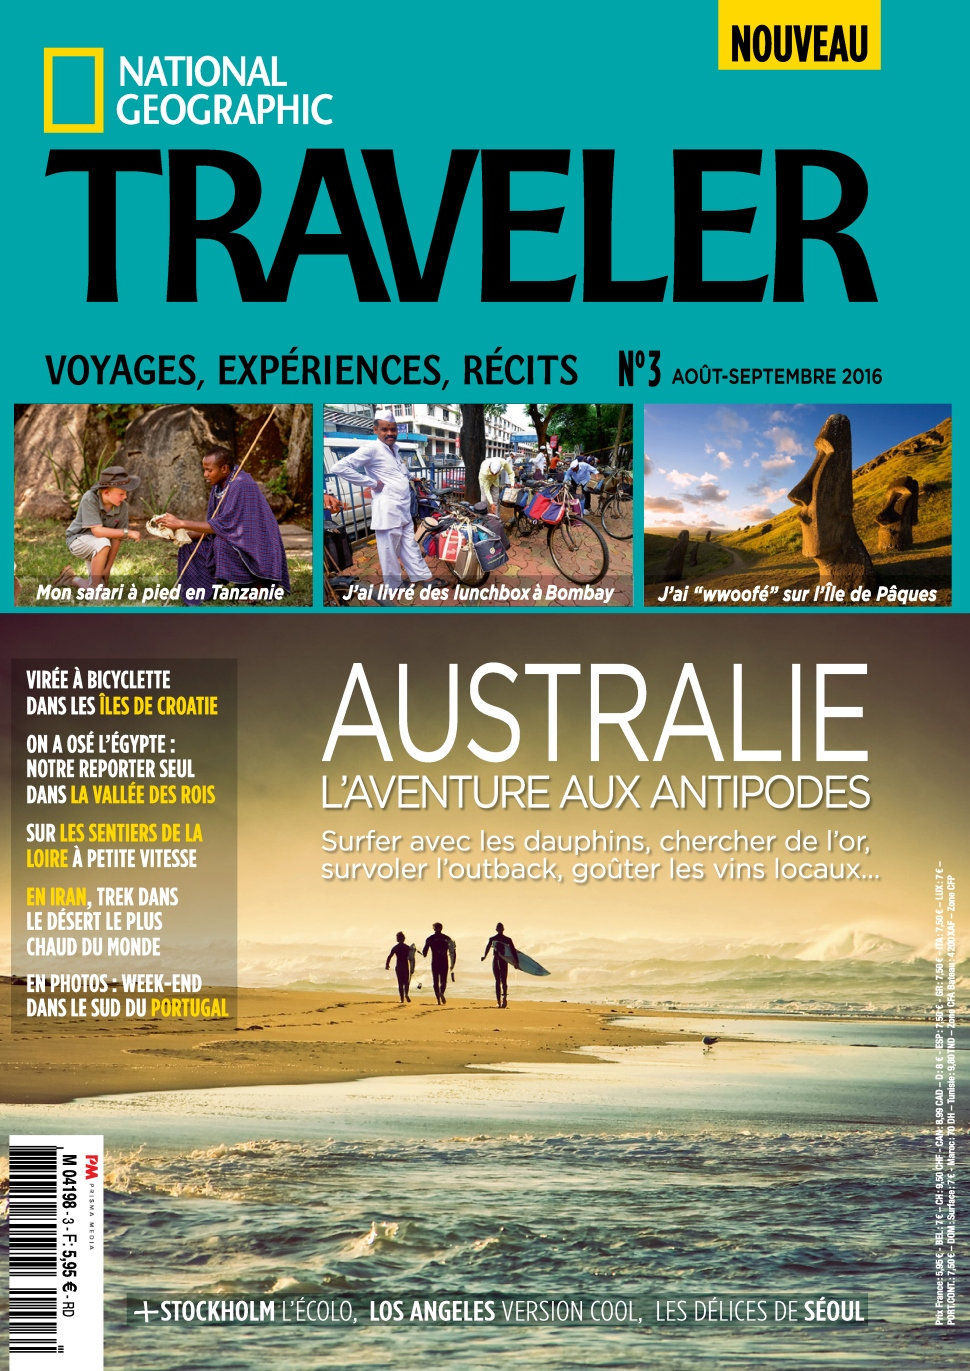 National Geographic Traveler N°3 - Aout/Septembre 2016